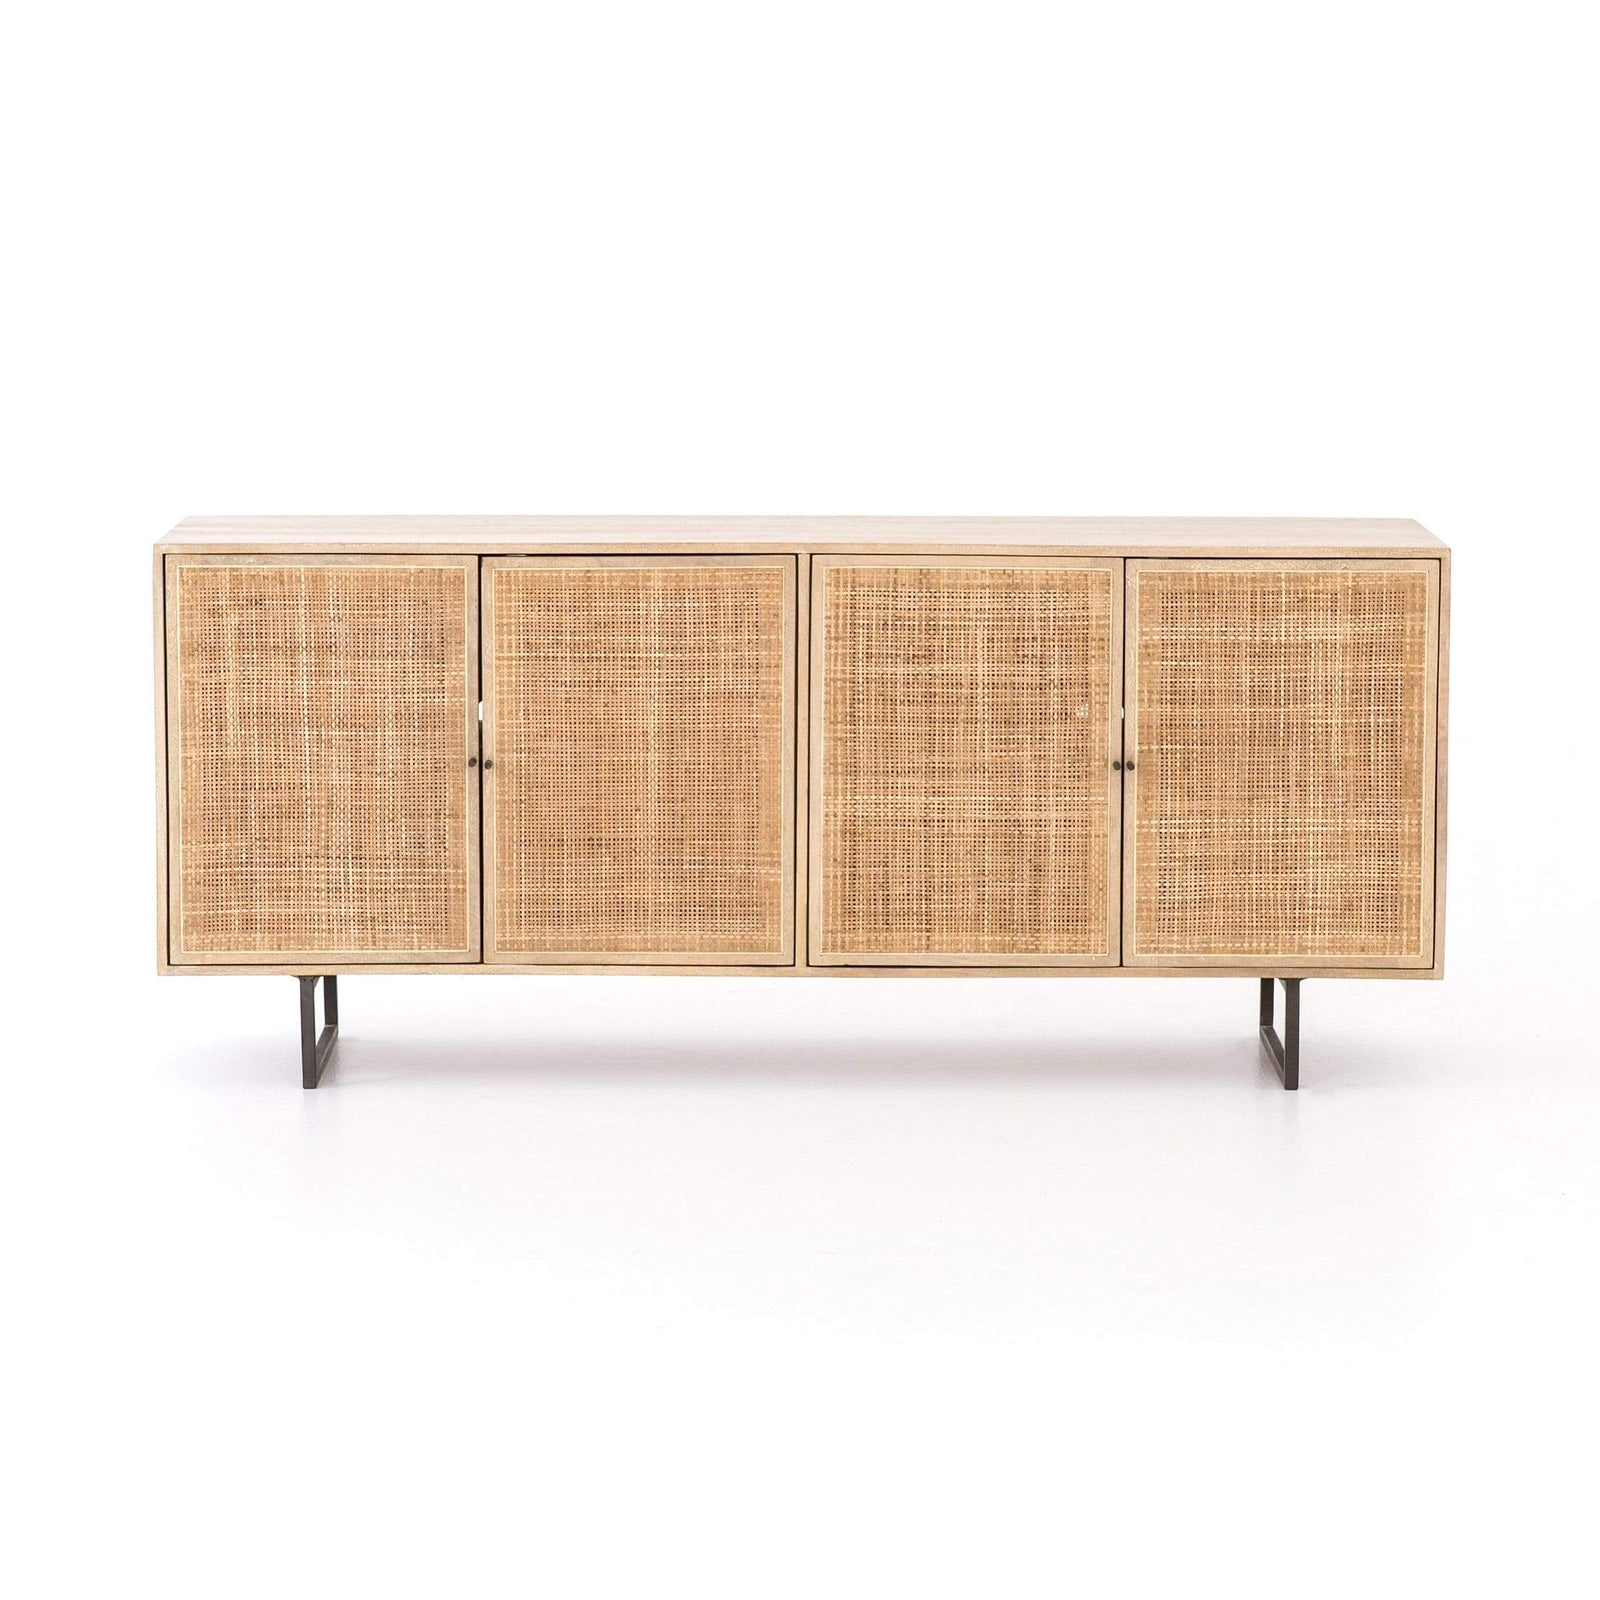 Four Hands Furniture Carmel Sideboard